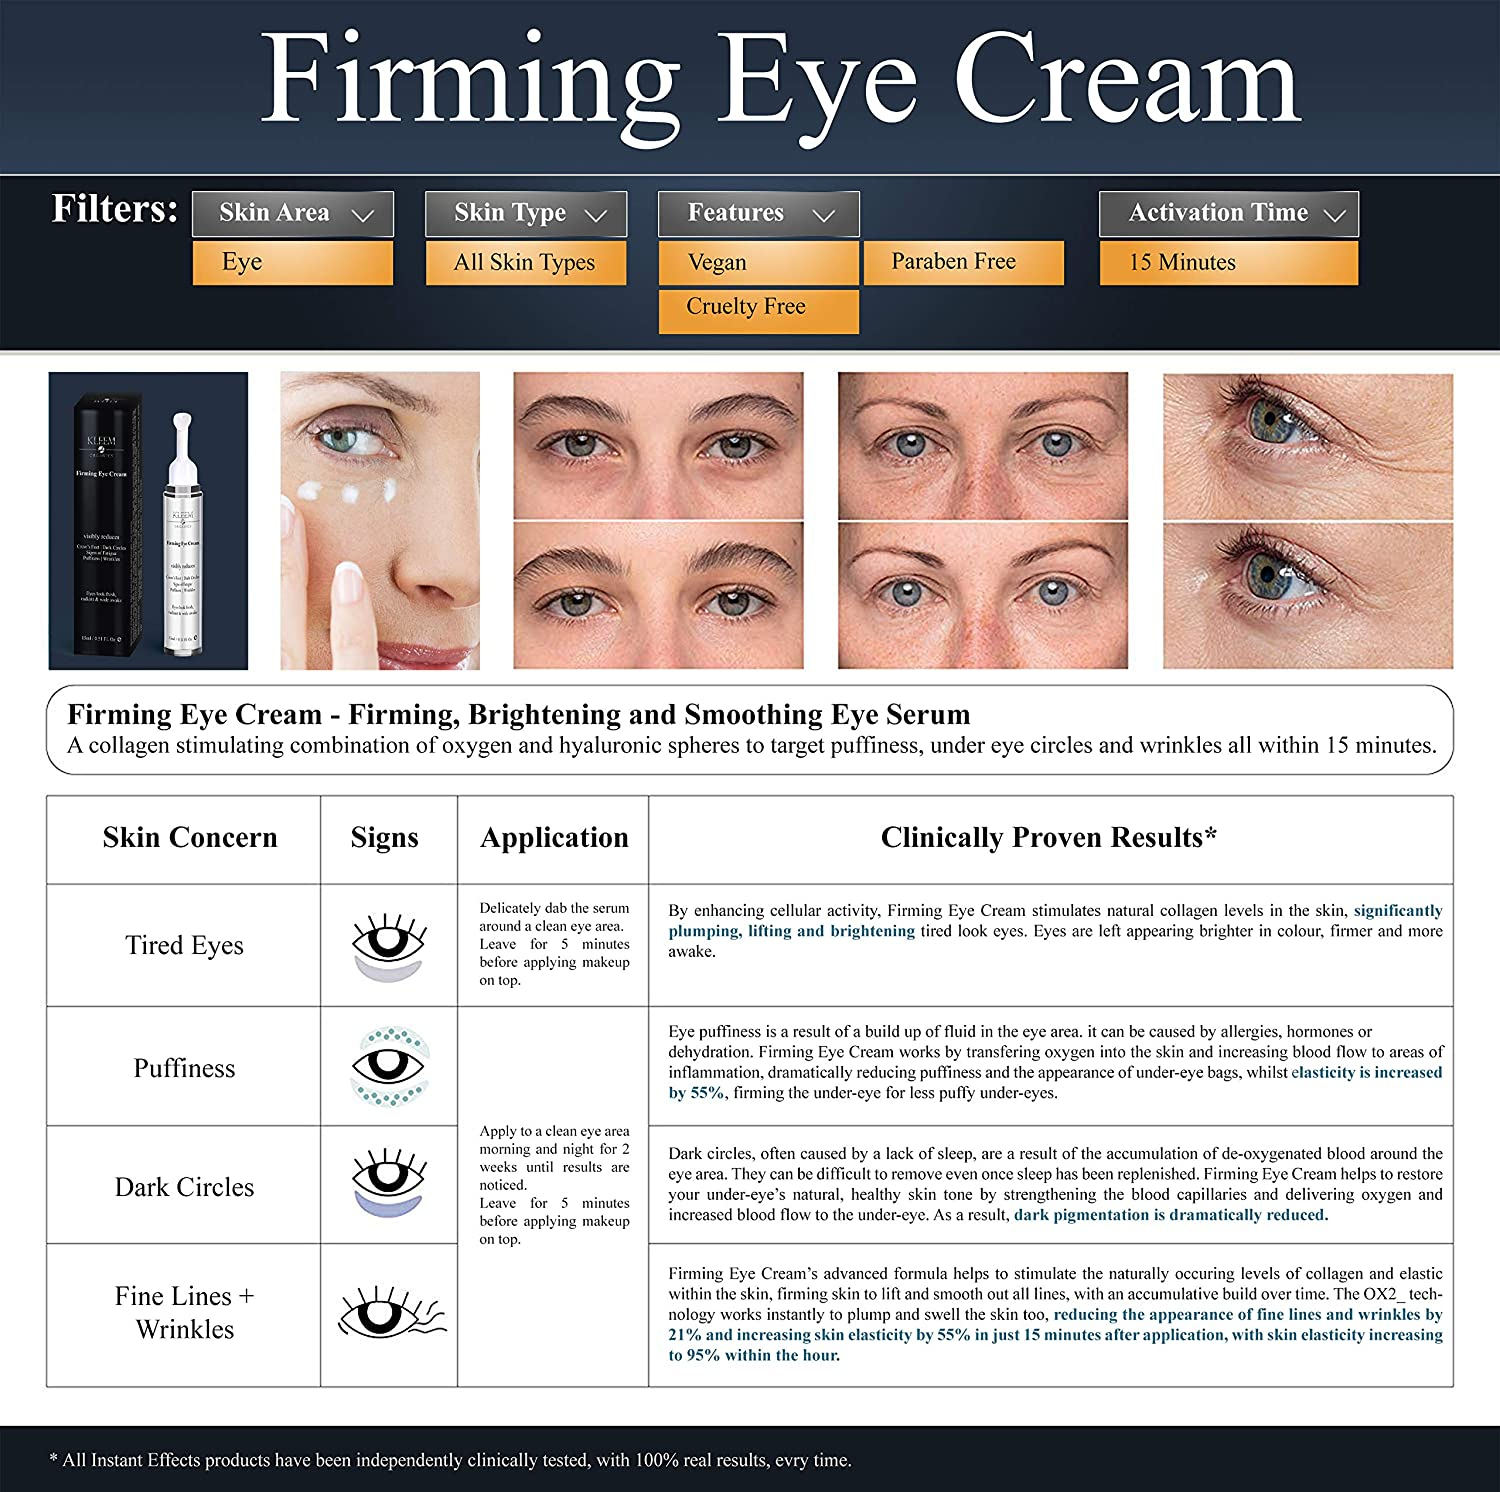 NEW Anti Aging Eye Cream for Dark Circles and Puffiness that Reduces Eye  Bags, Crow's Feet, Fine